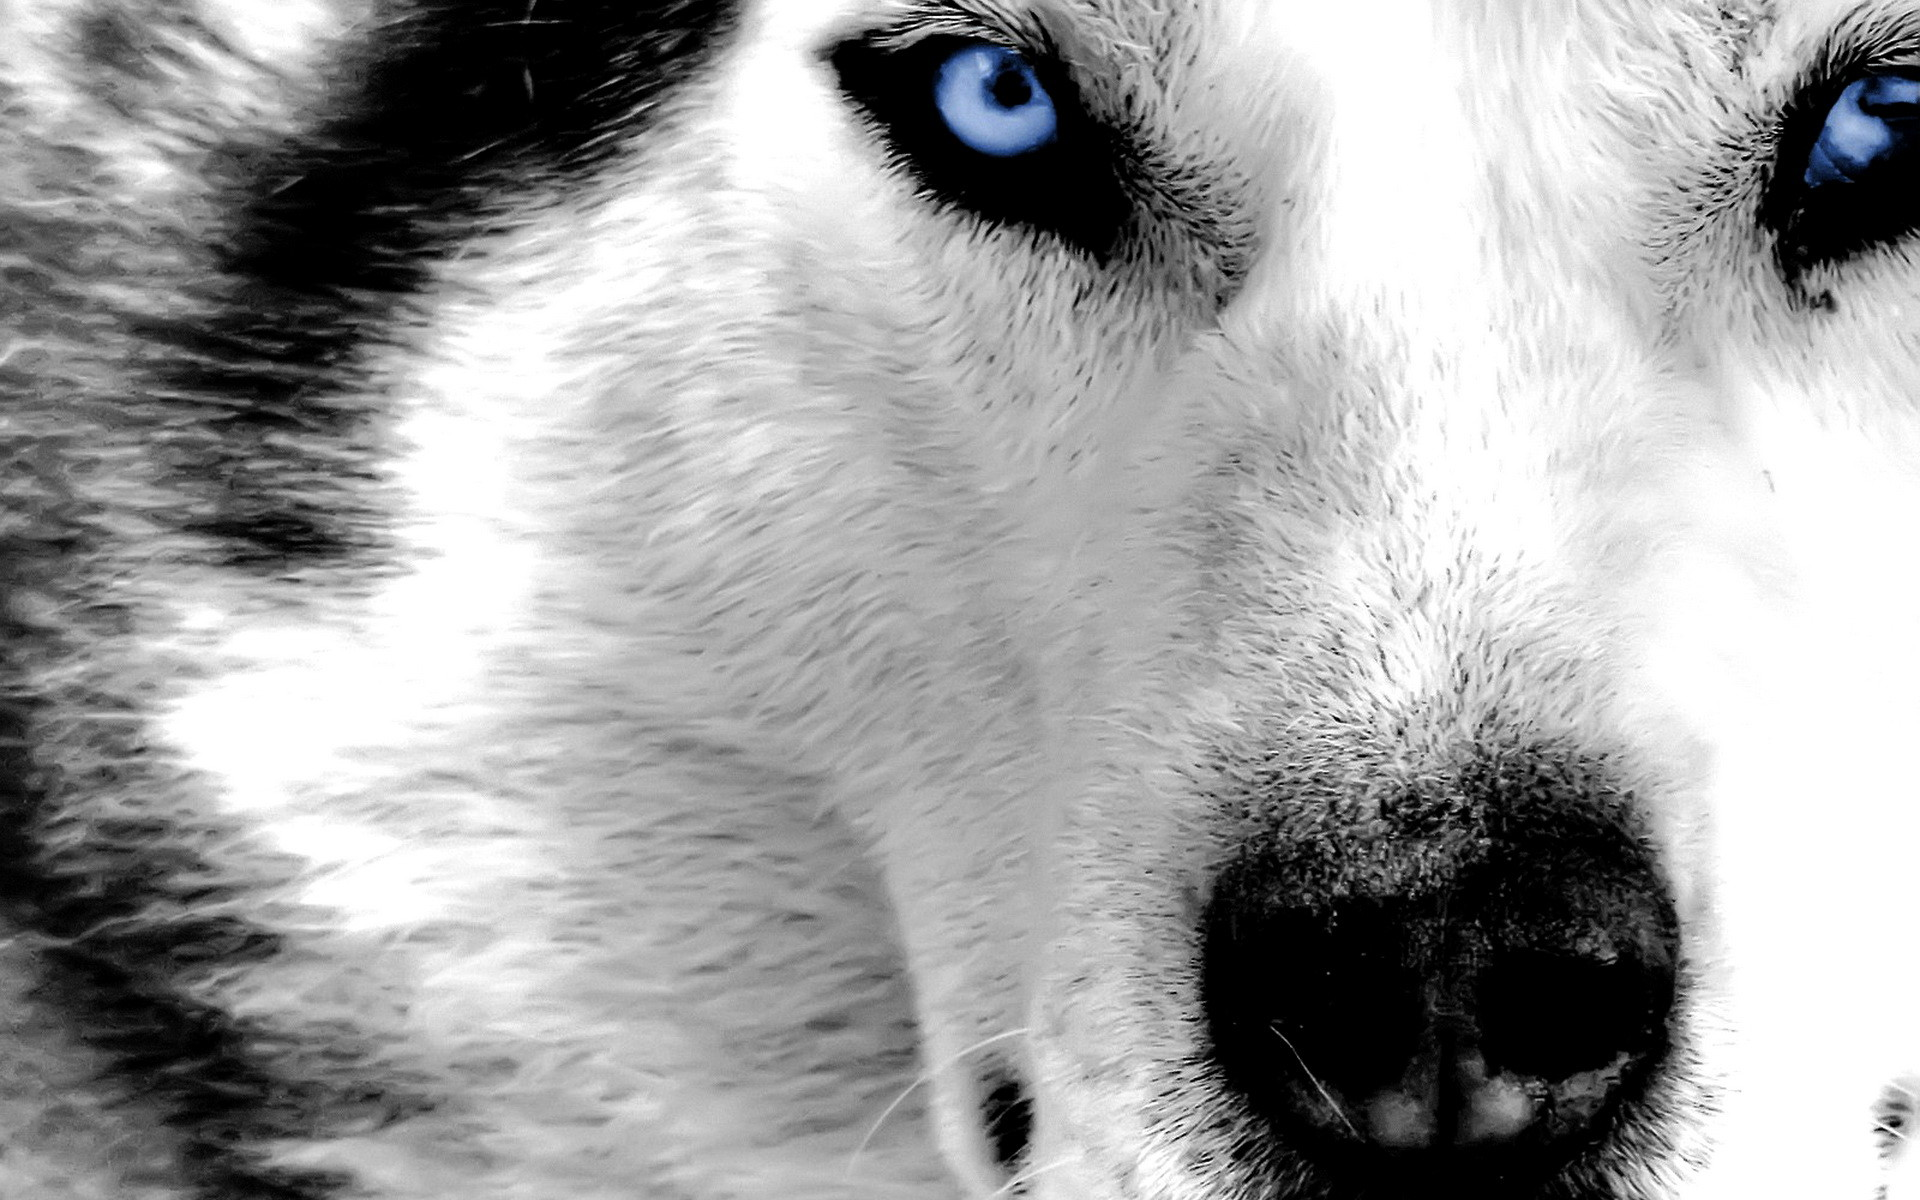 Explore Game Of Thrones, White Wolves, and more!